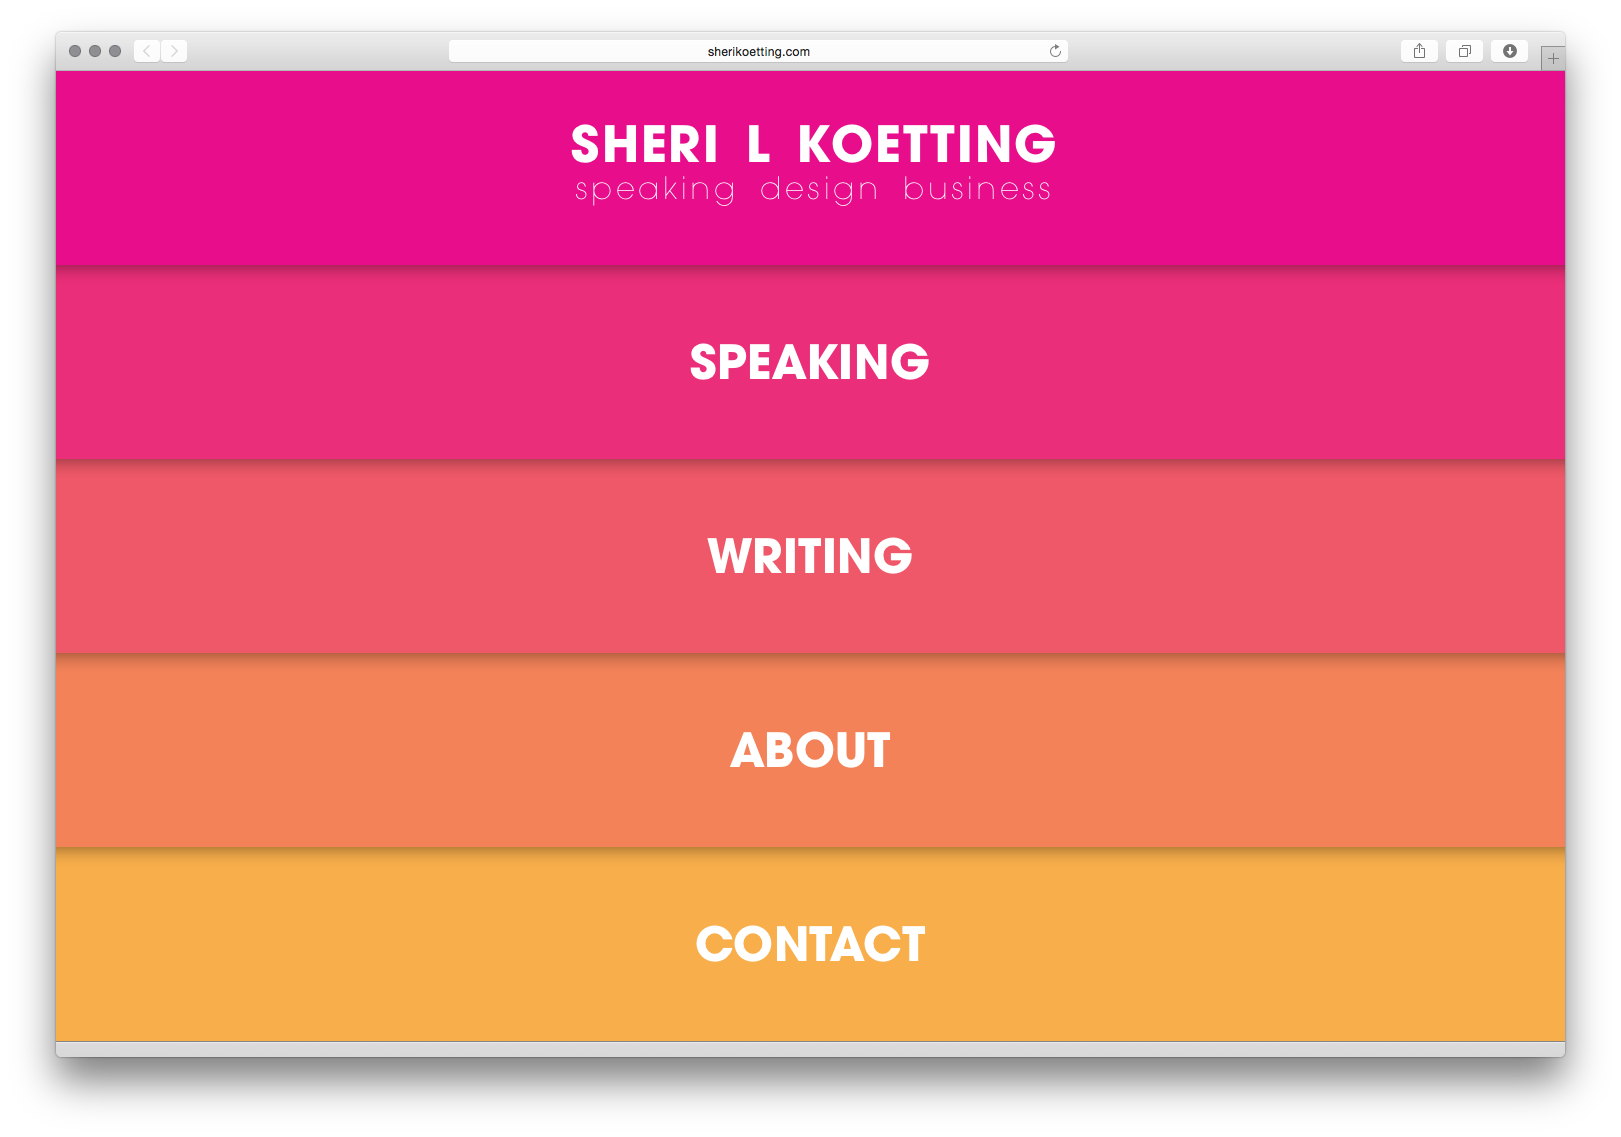 MSLK Partner Sheri L Koetting Launches Her Own Speaker Site